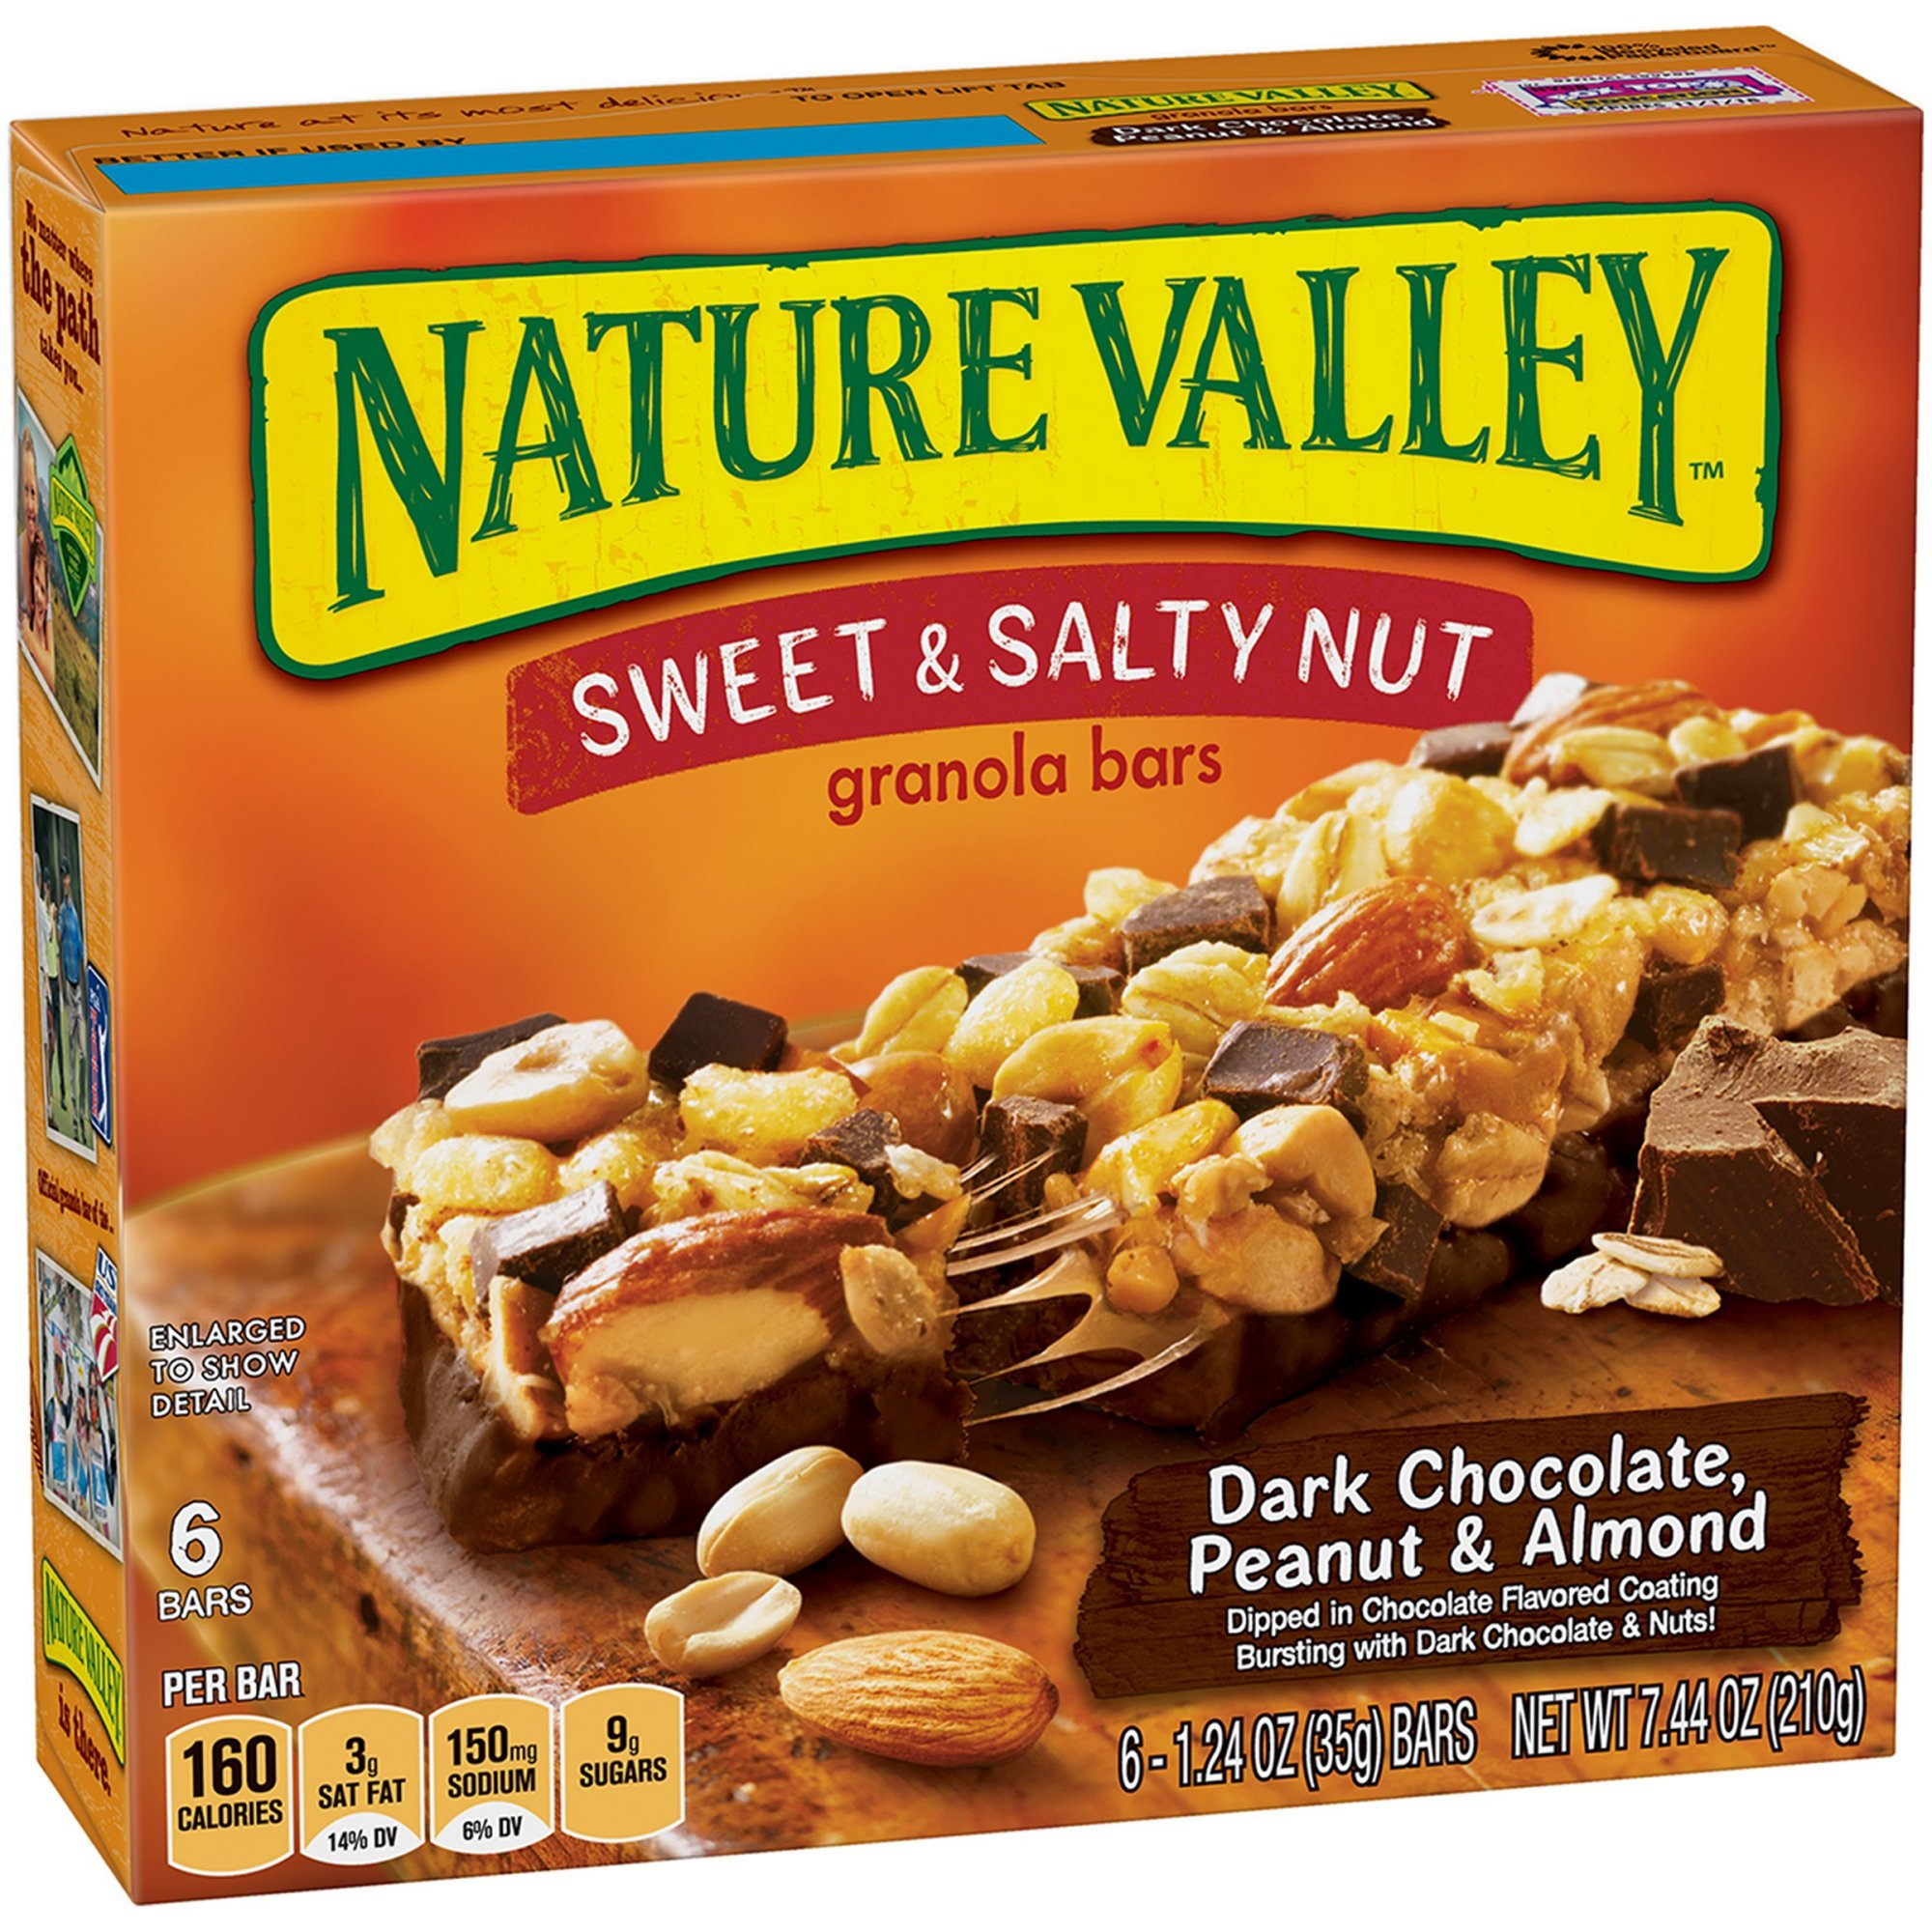 Nature Valley Granola Bars, Sweet and Salty Nut, Dark Chocolate Peanut & Almond, 6 Count - 1.2 oz